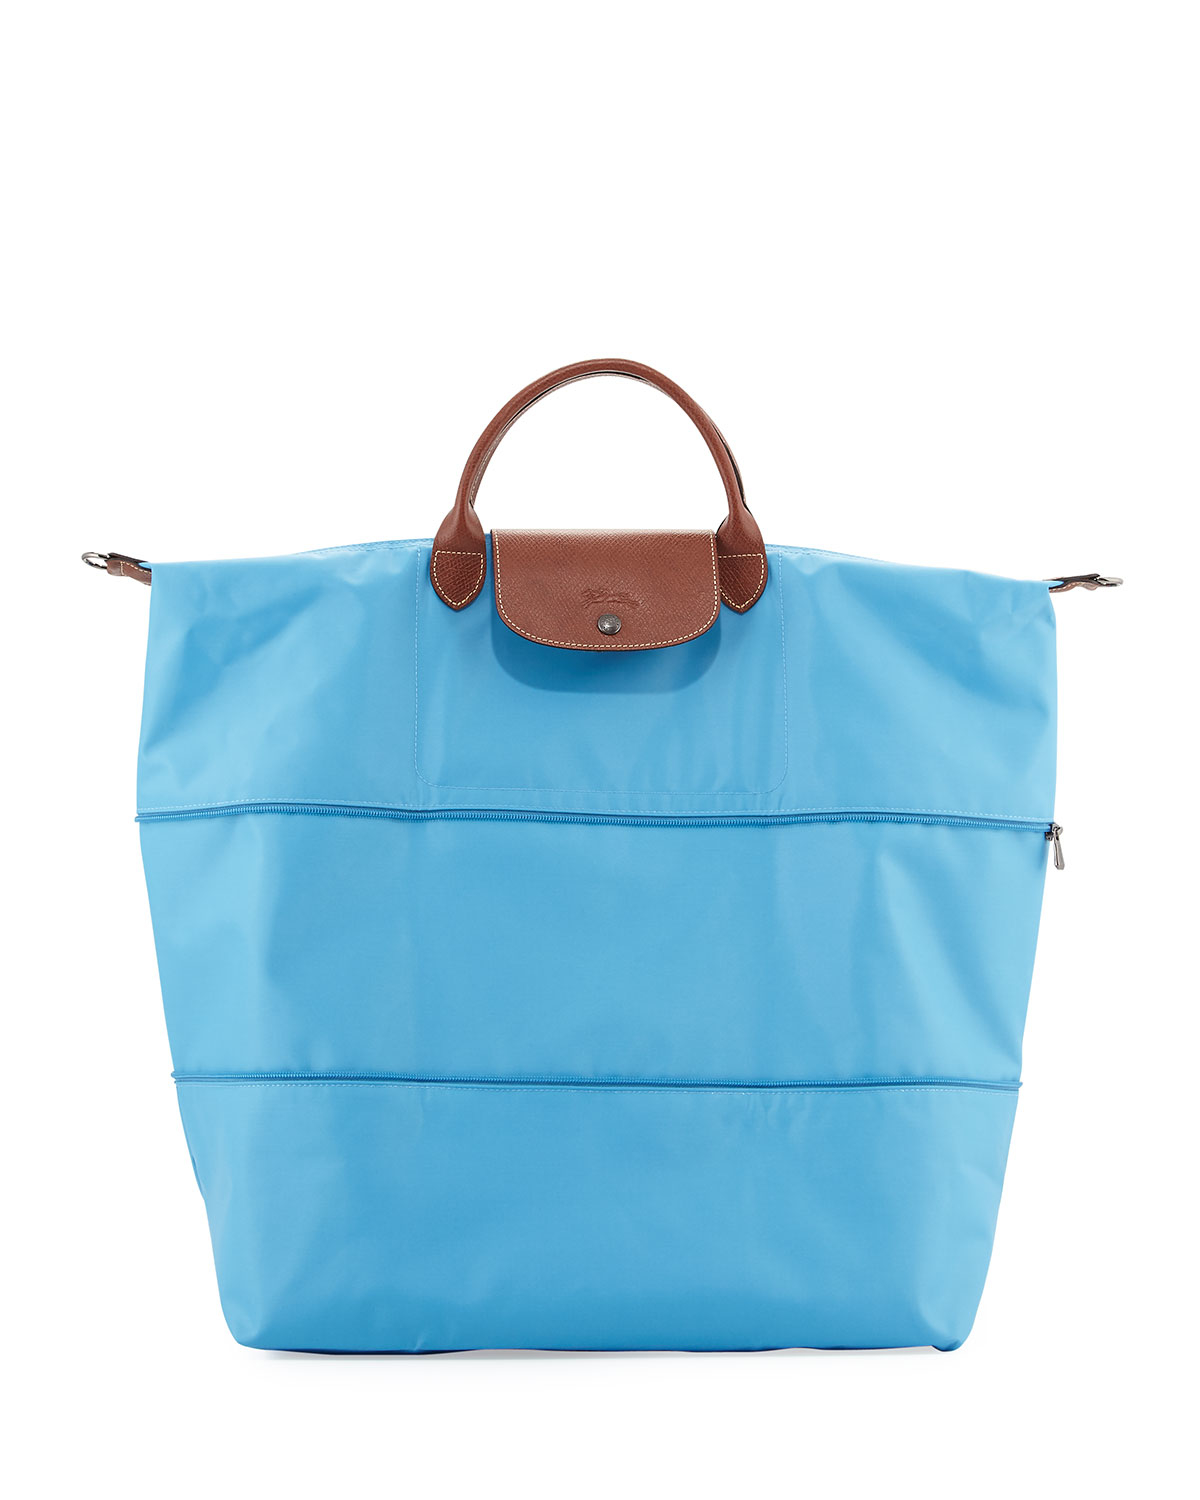 0e03391ca818 Lyst - Longchamp Le Pliage Expandable Travel Bag in Blue